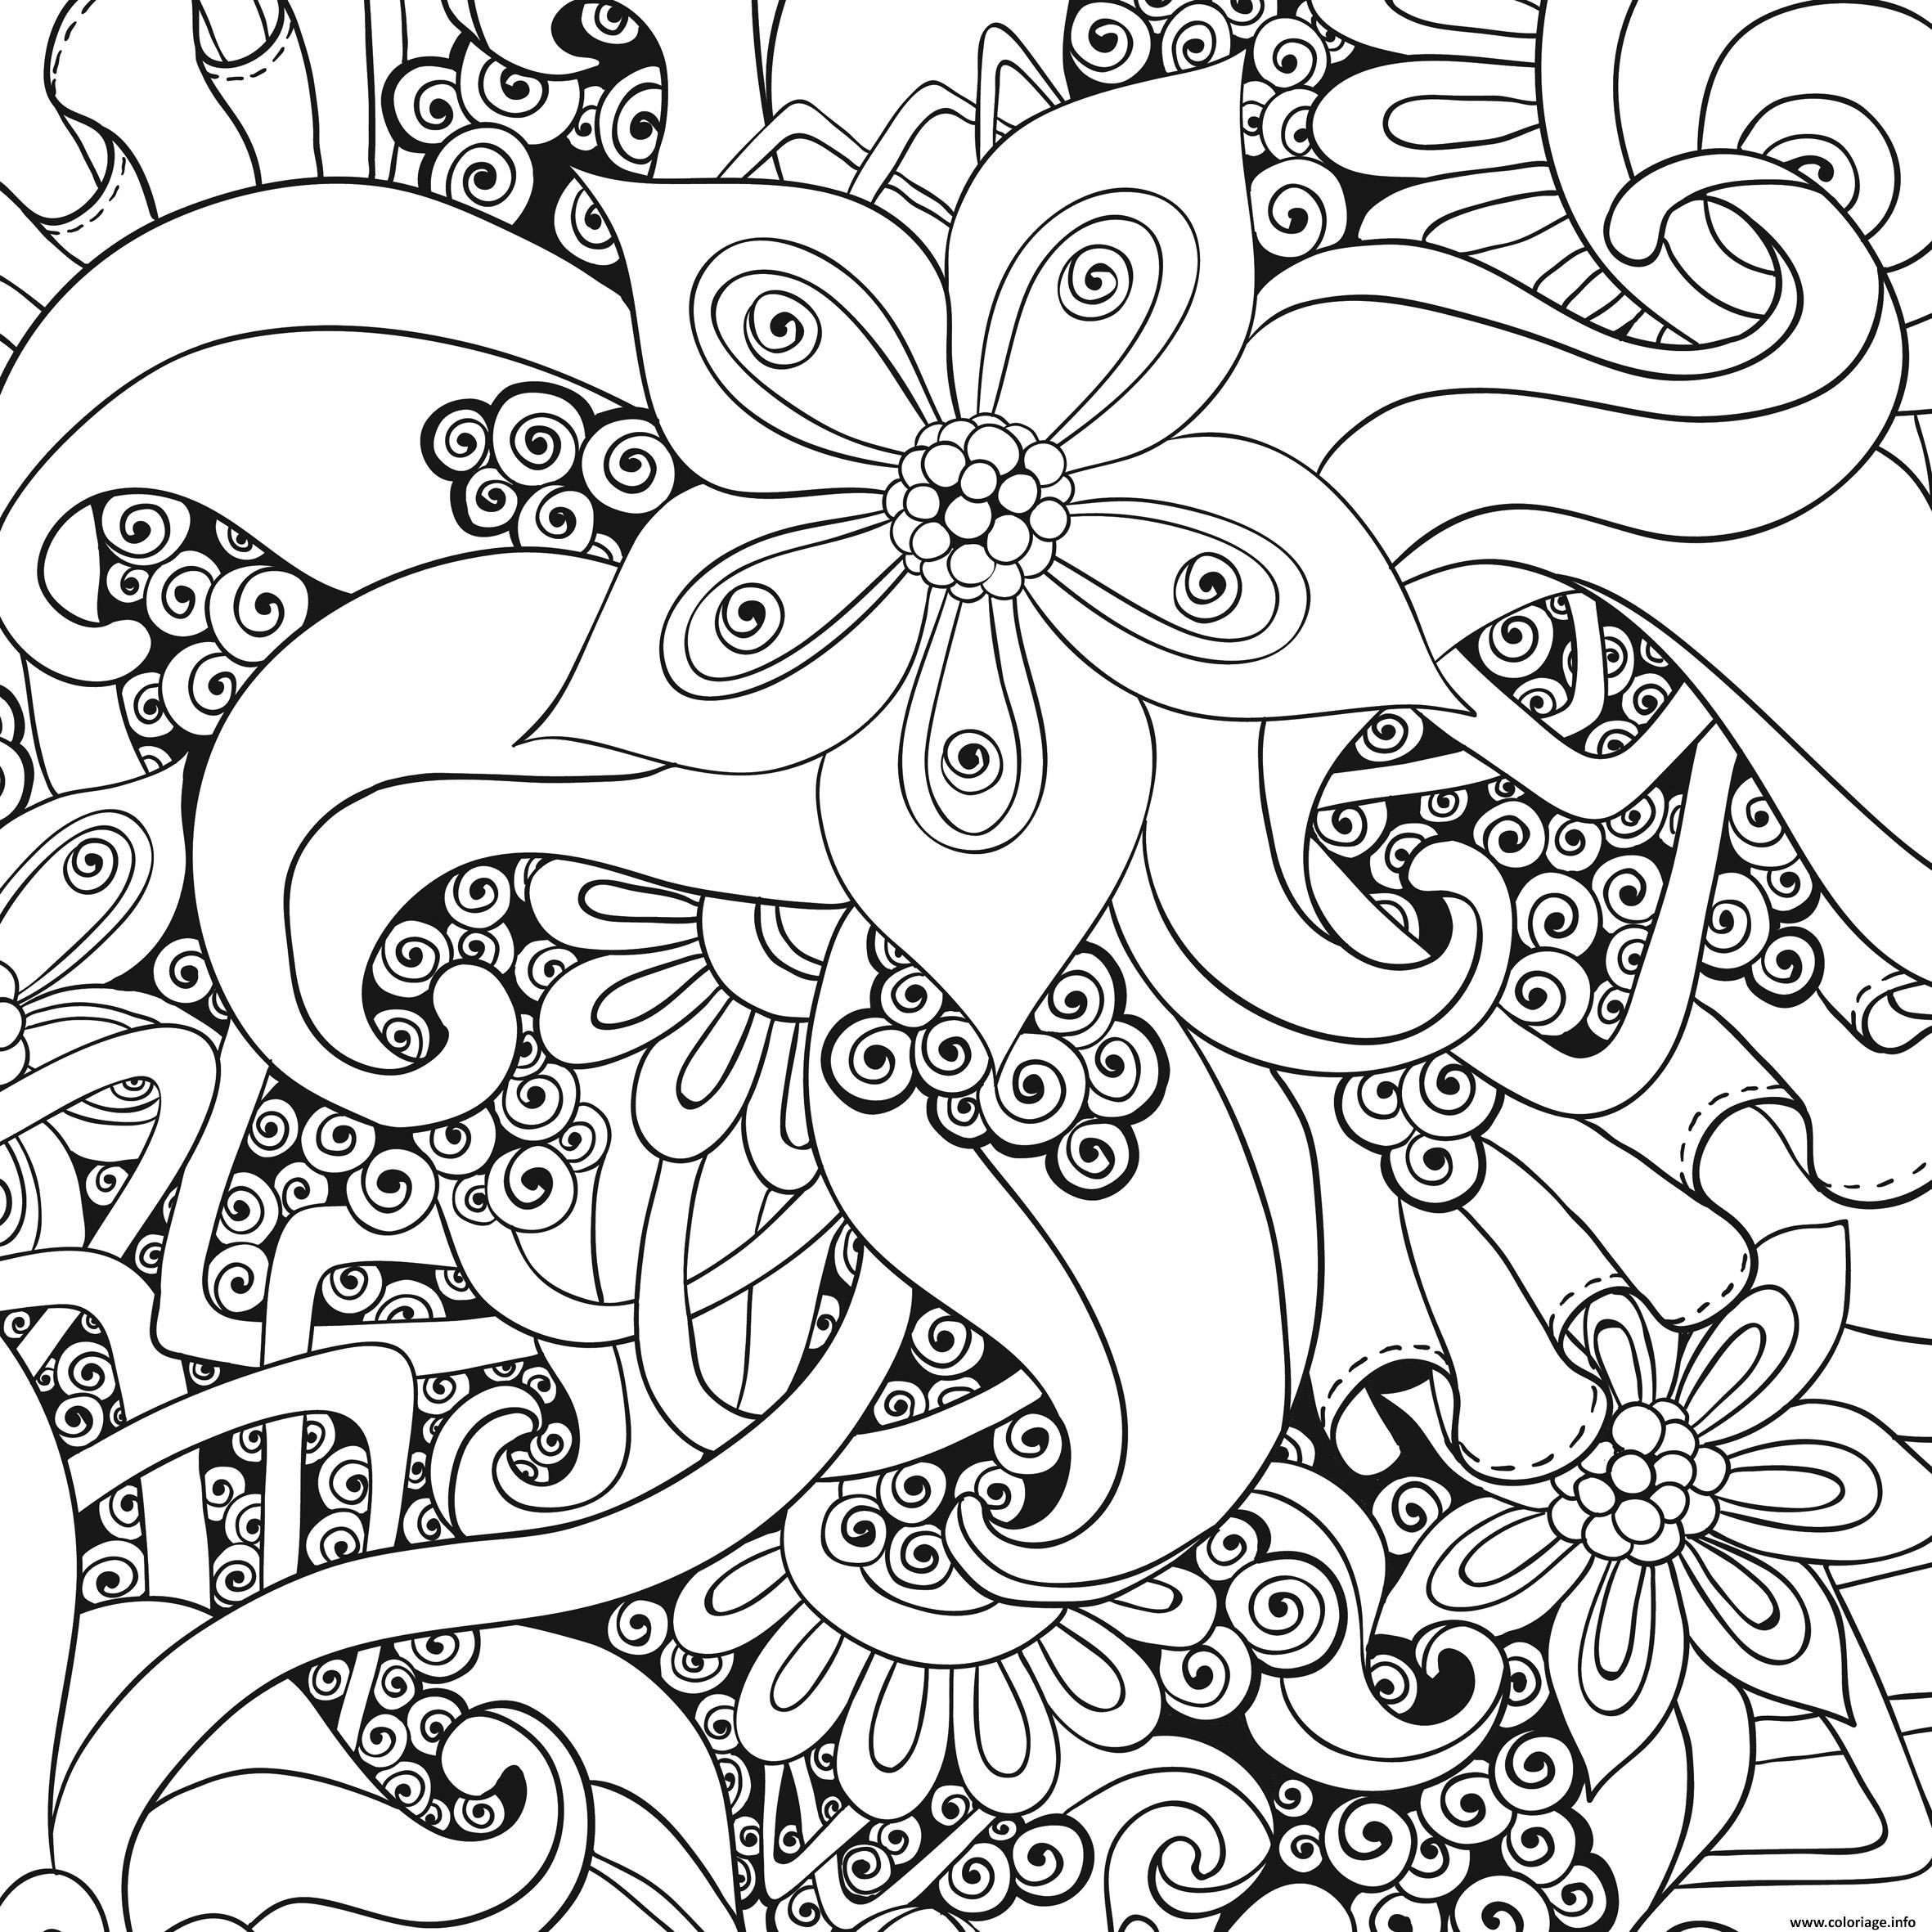 Coloriage Anti Stress Gifi.Coloriage Vase Sans Fleur Apanageet Com